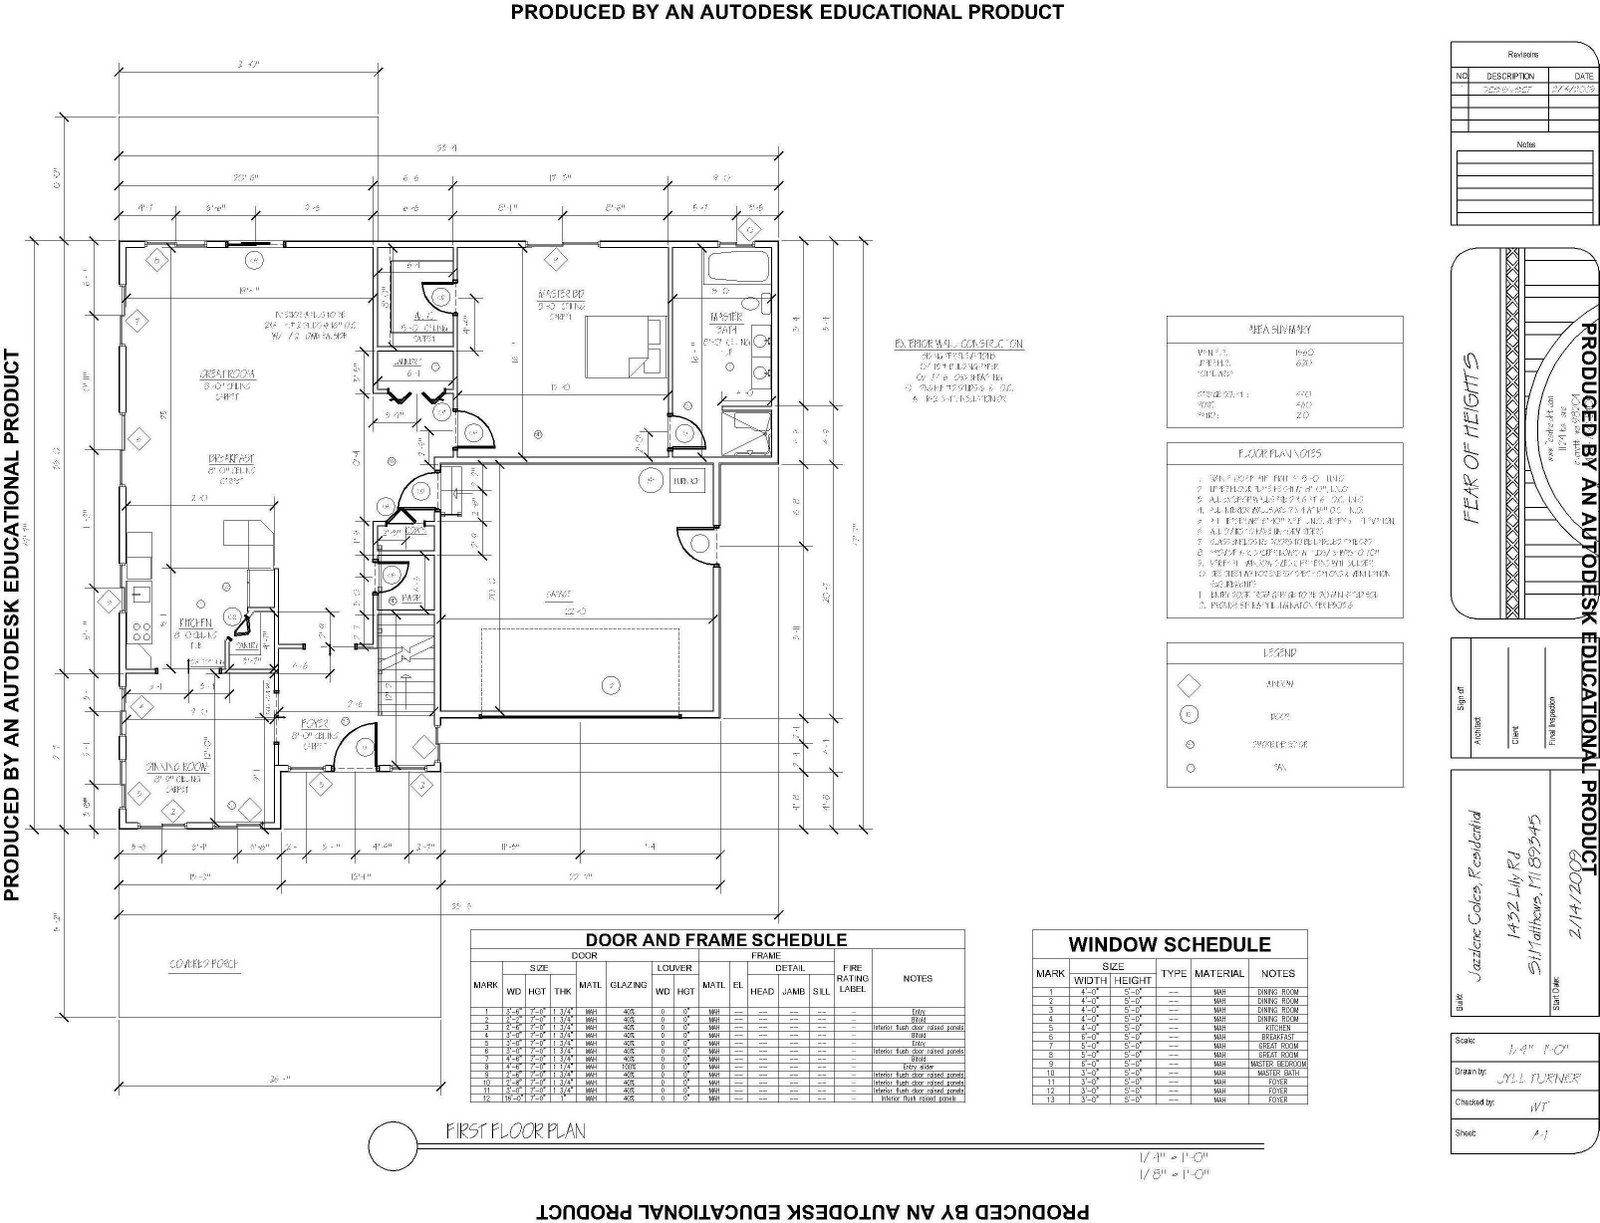 Architecture by jyll turner at Full size architectural drawings